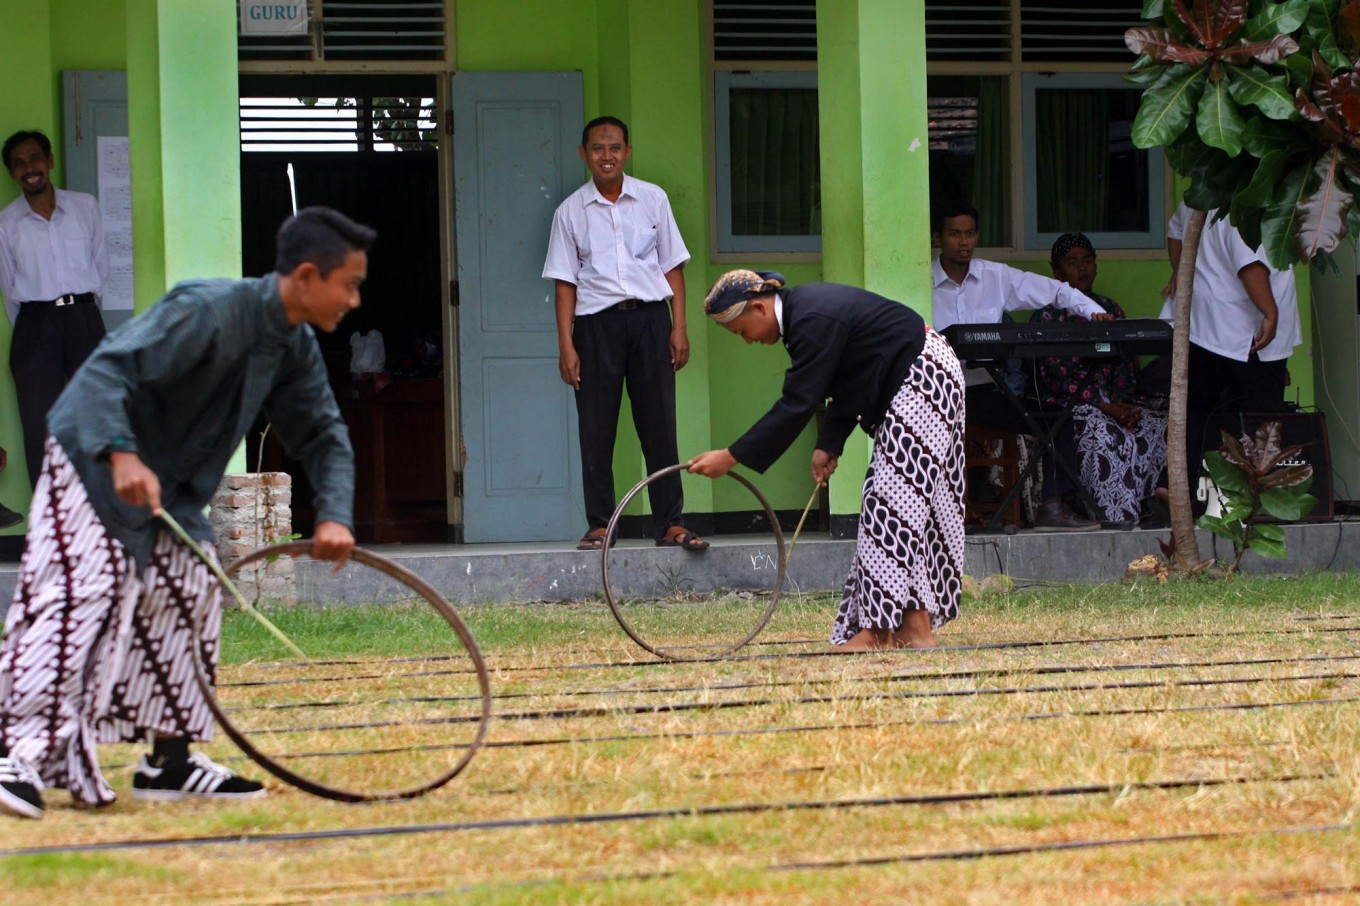 Students compete in the wheel race during the student orientation program. JP/Aditya Sagita